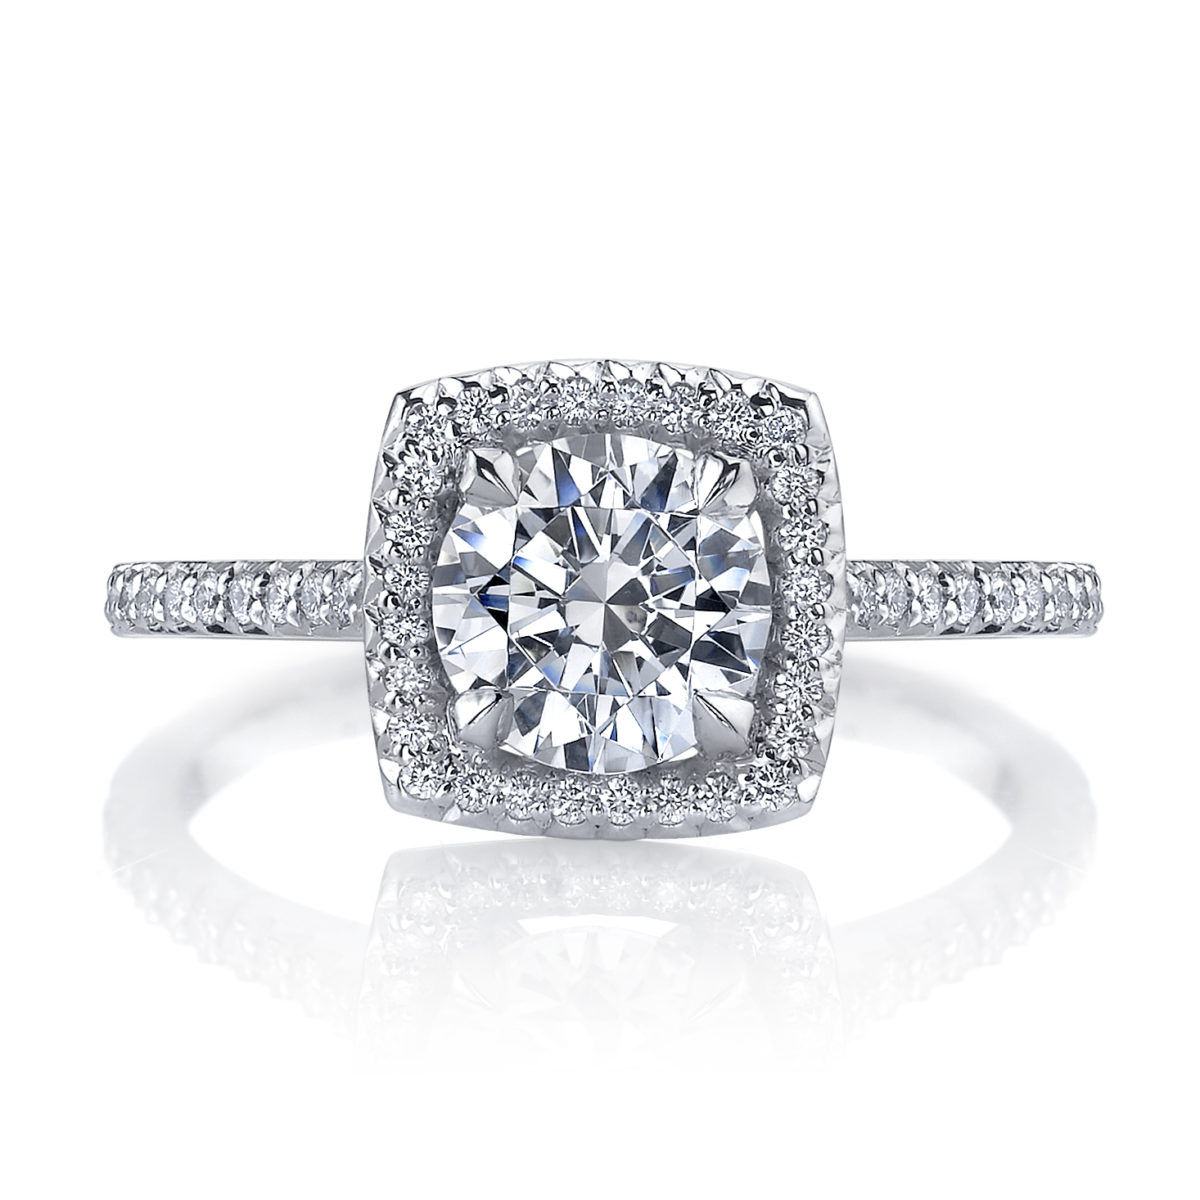 Michael B Royal Cushion Trois Engagement Ring